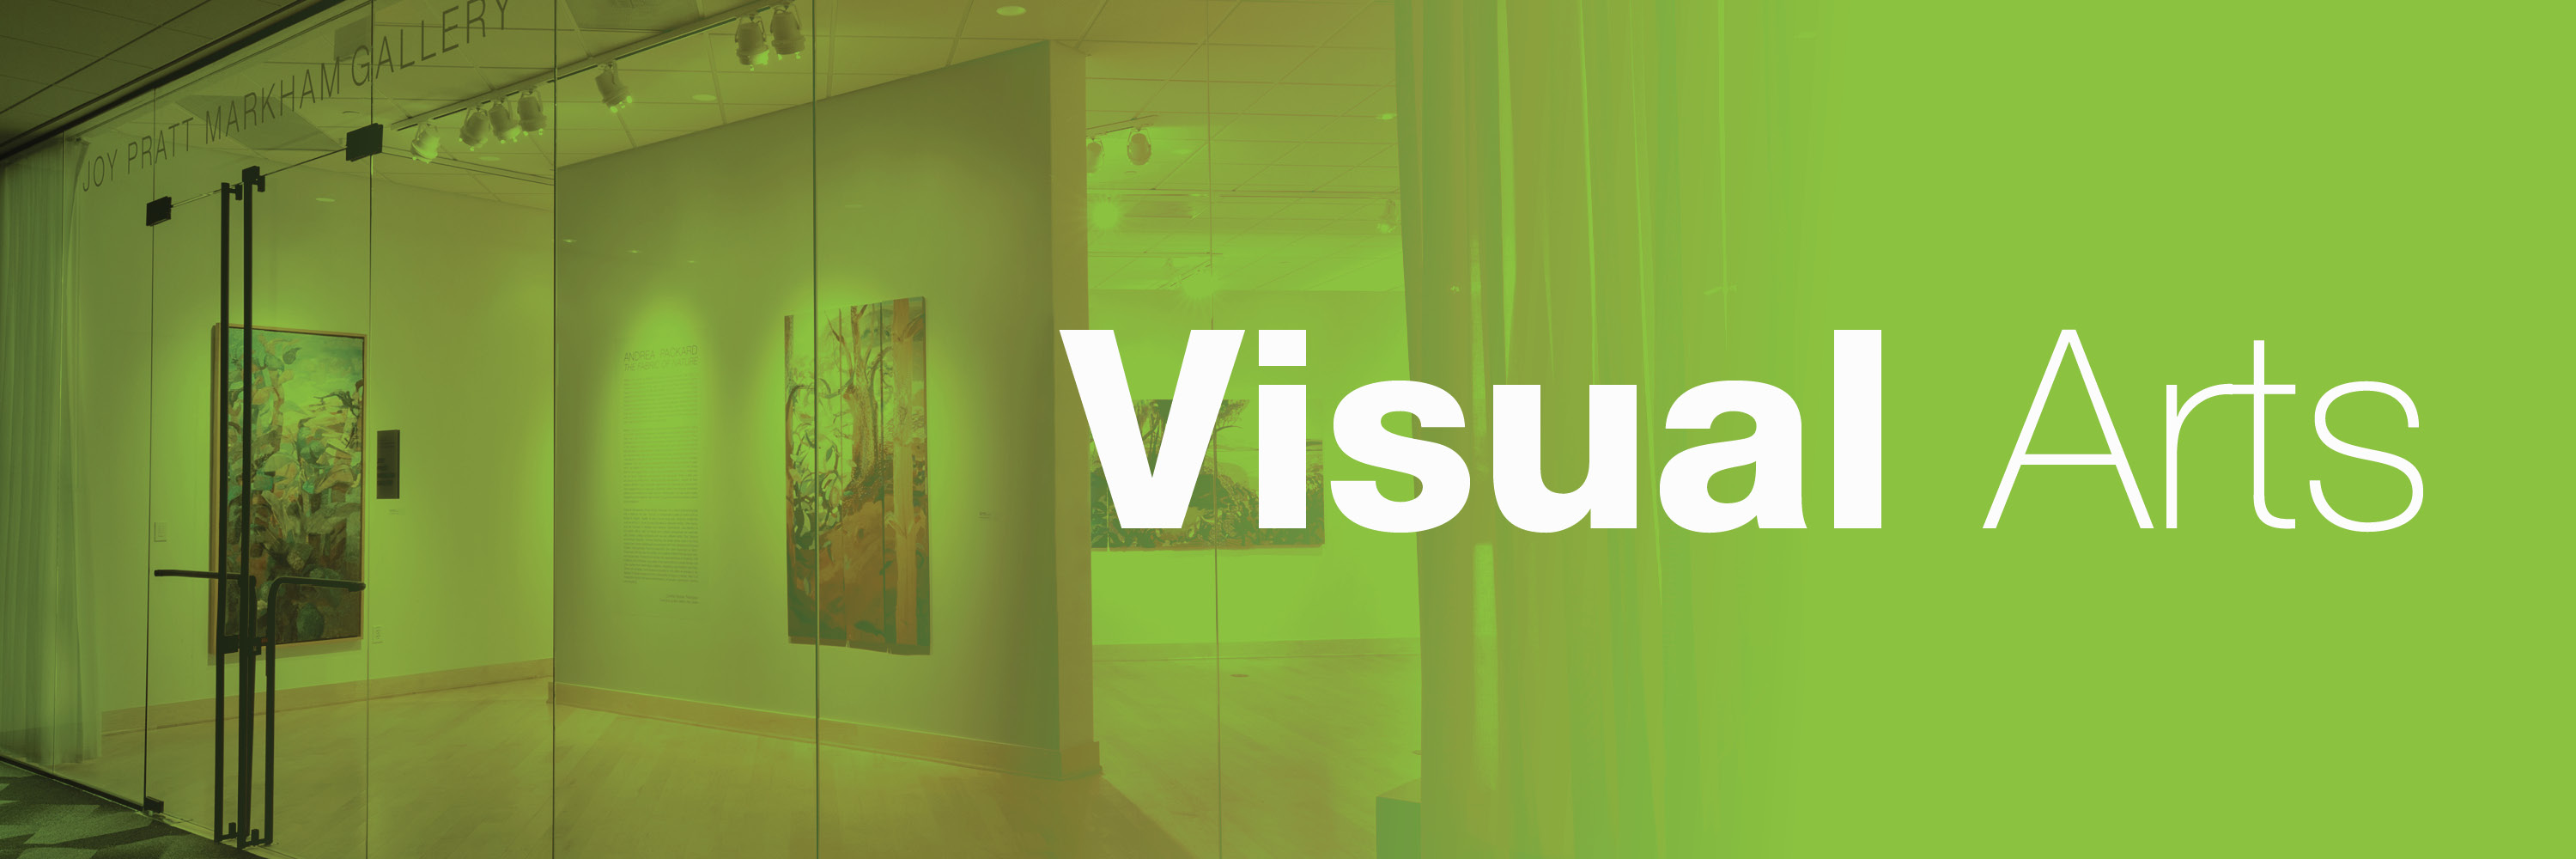 Visual Arts at Artosphere